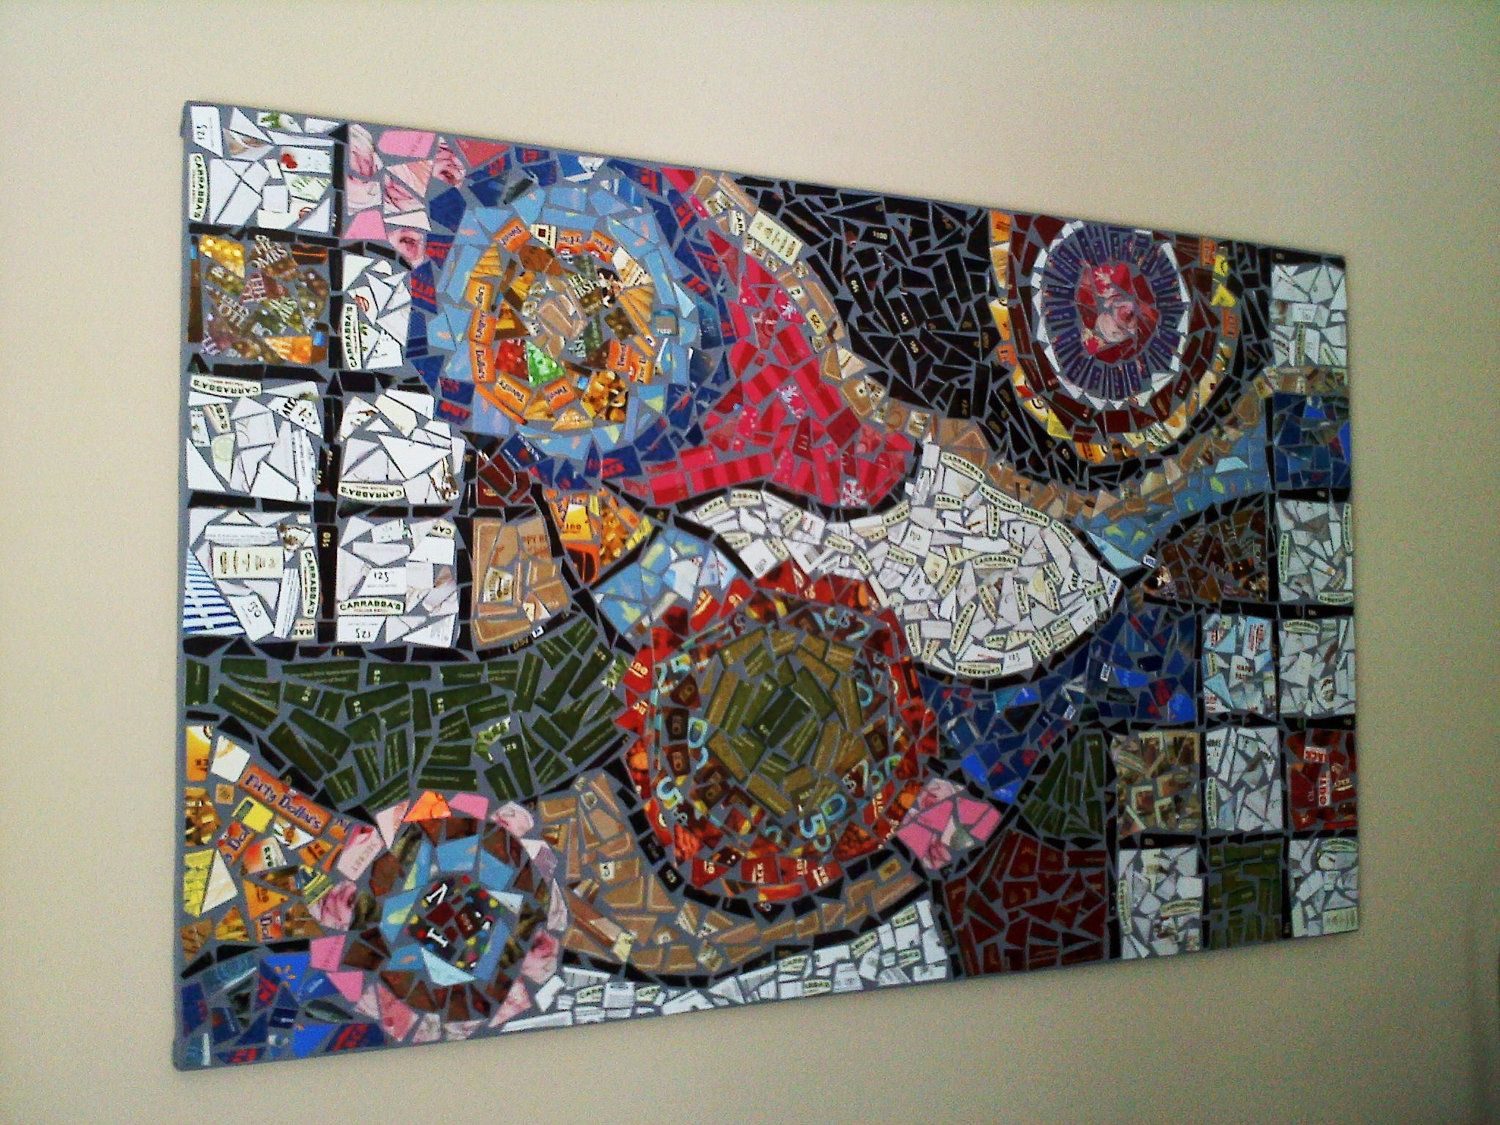 Large recycled gift card mosaic abstract art 120000